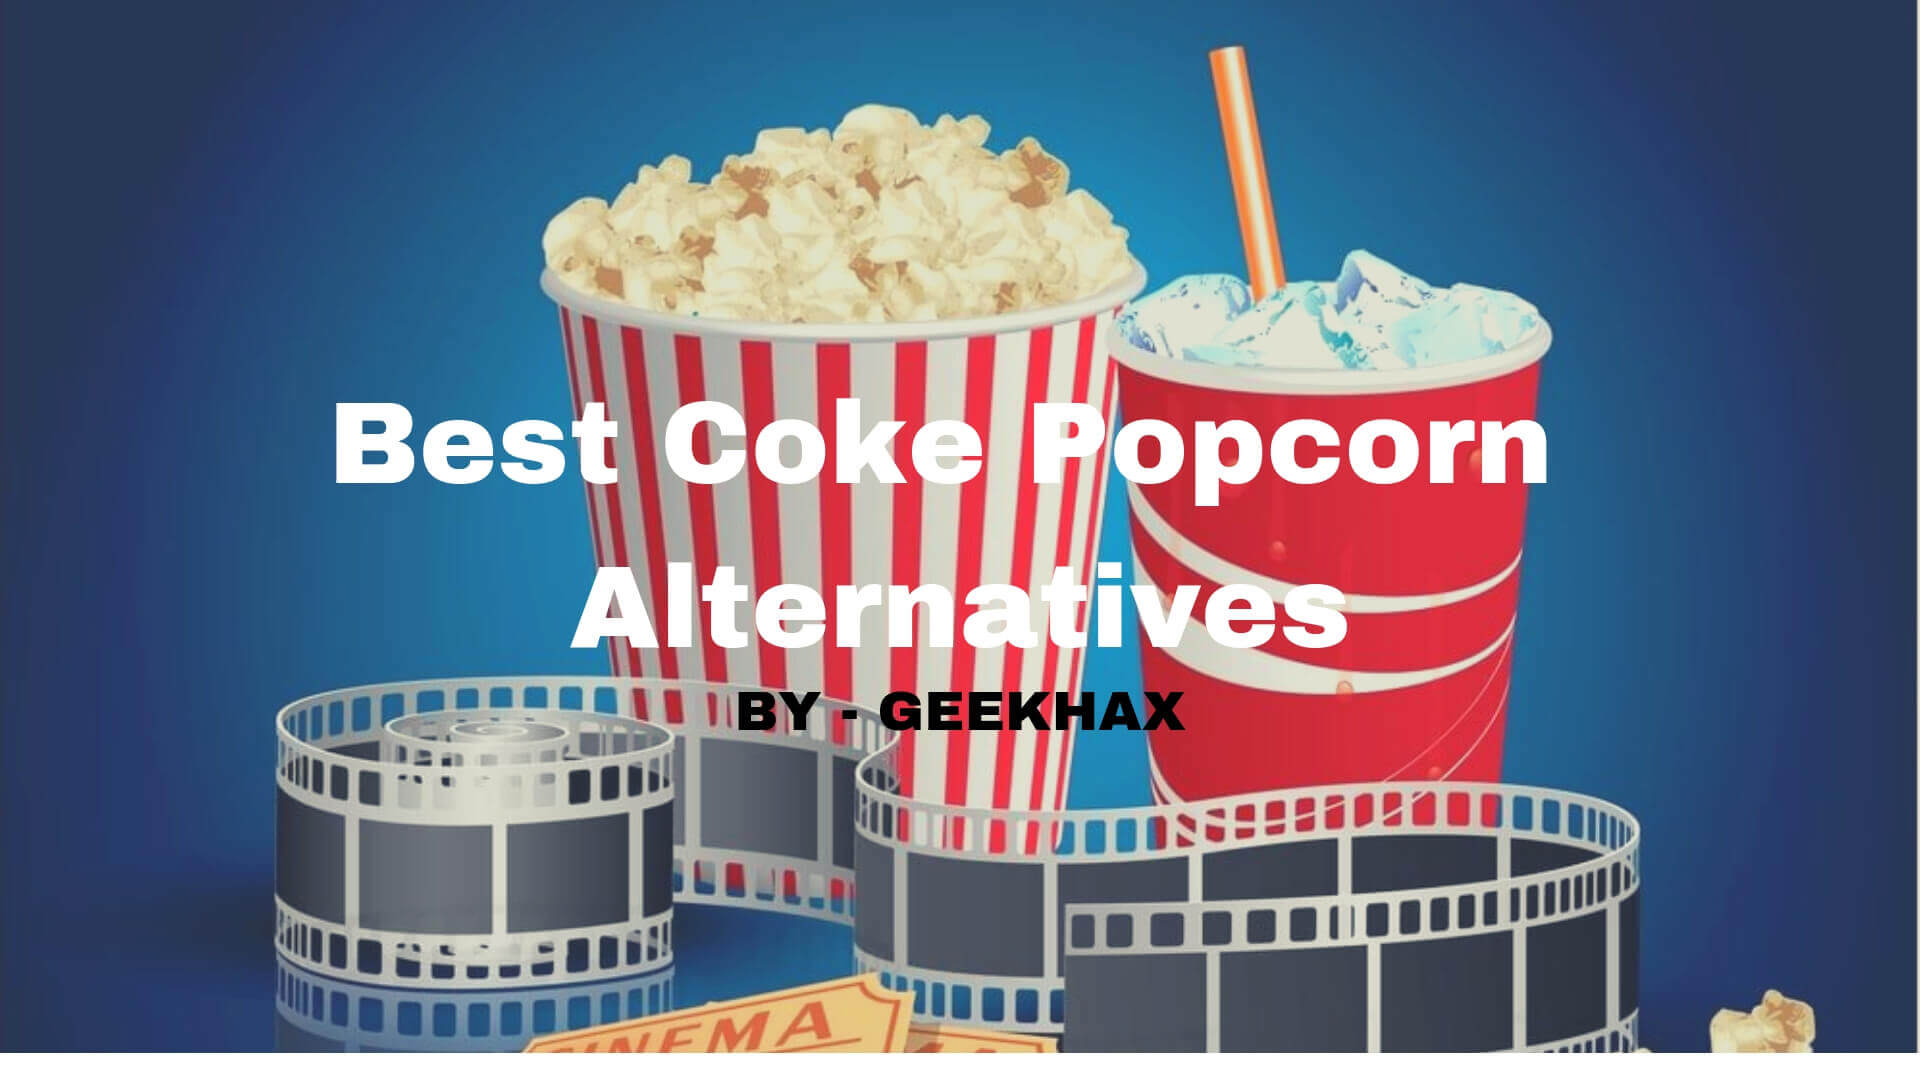 Alternatives to Coke and Popcorn